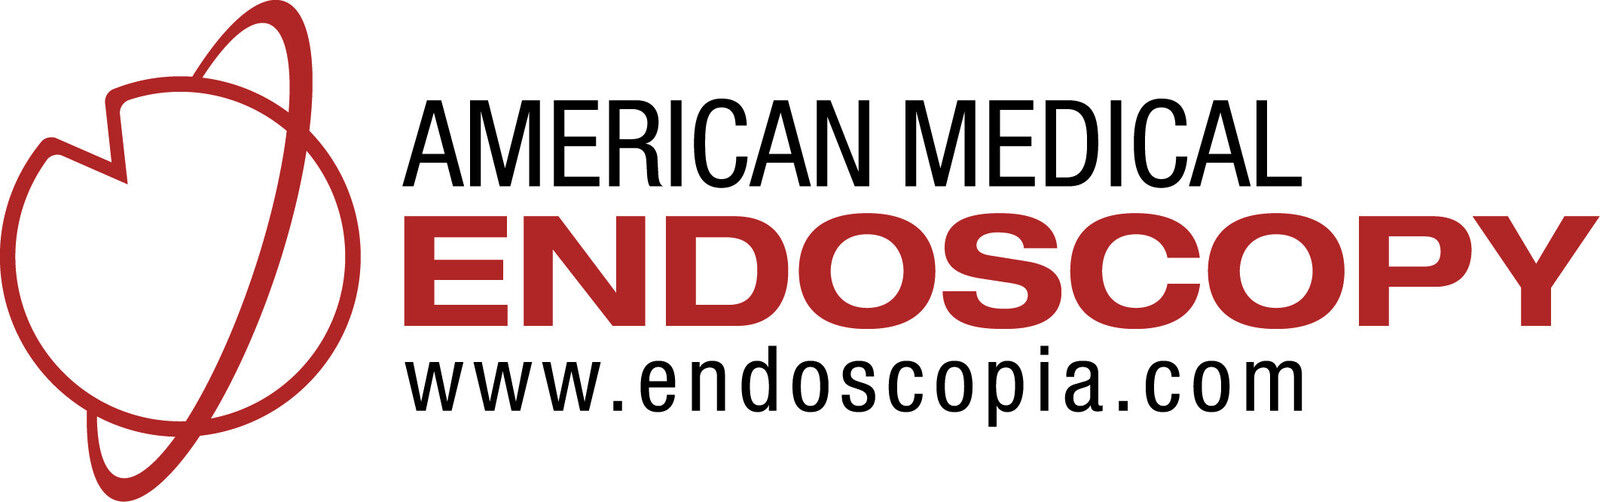 American Medical Endoscopy